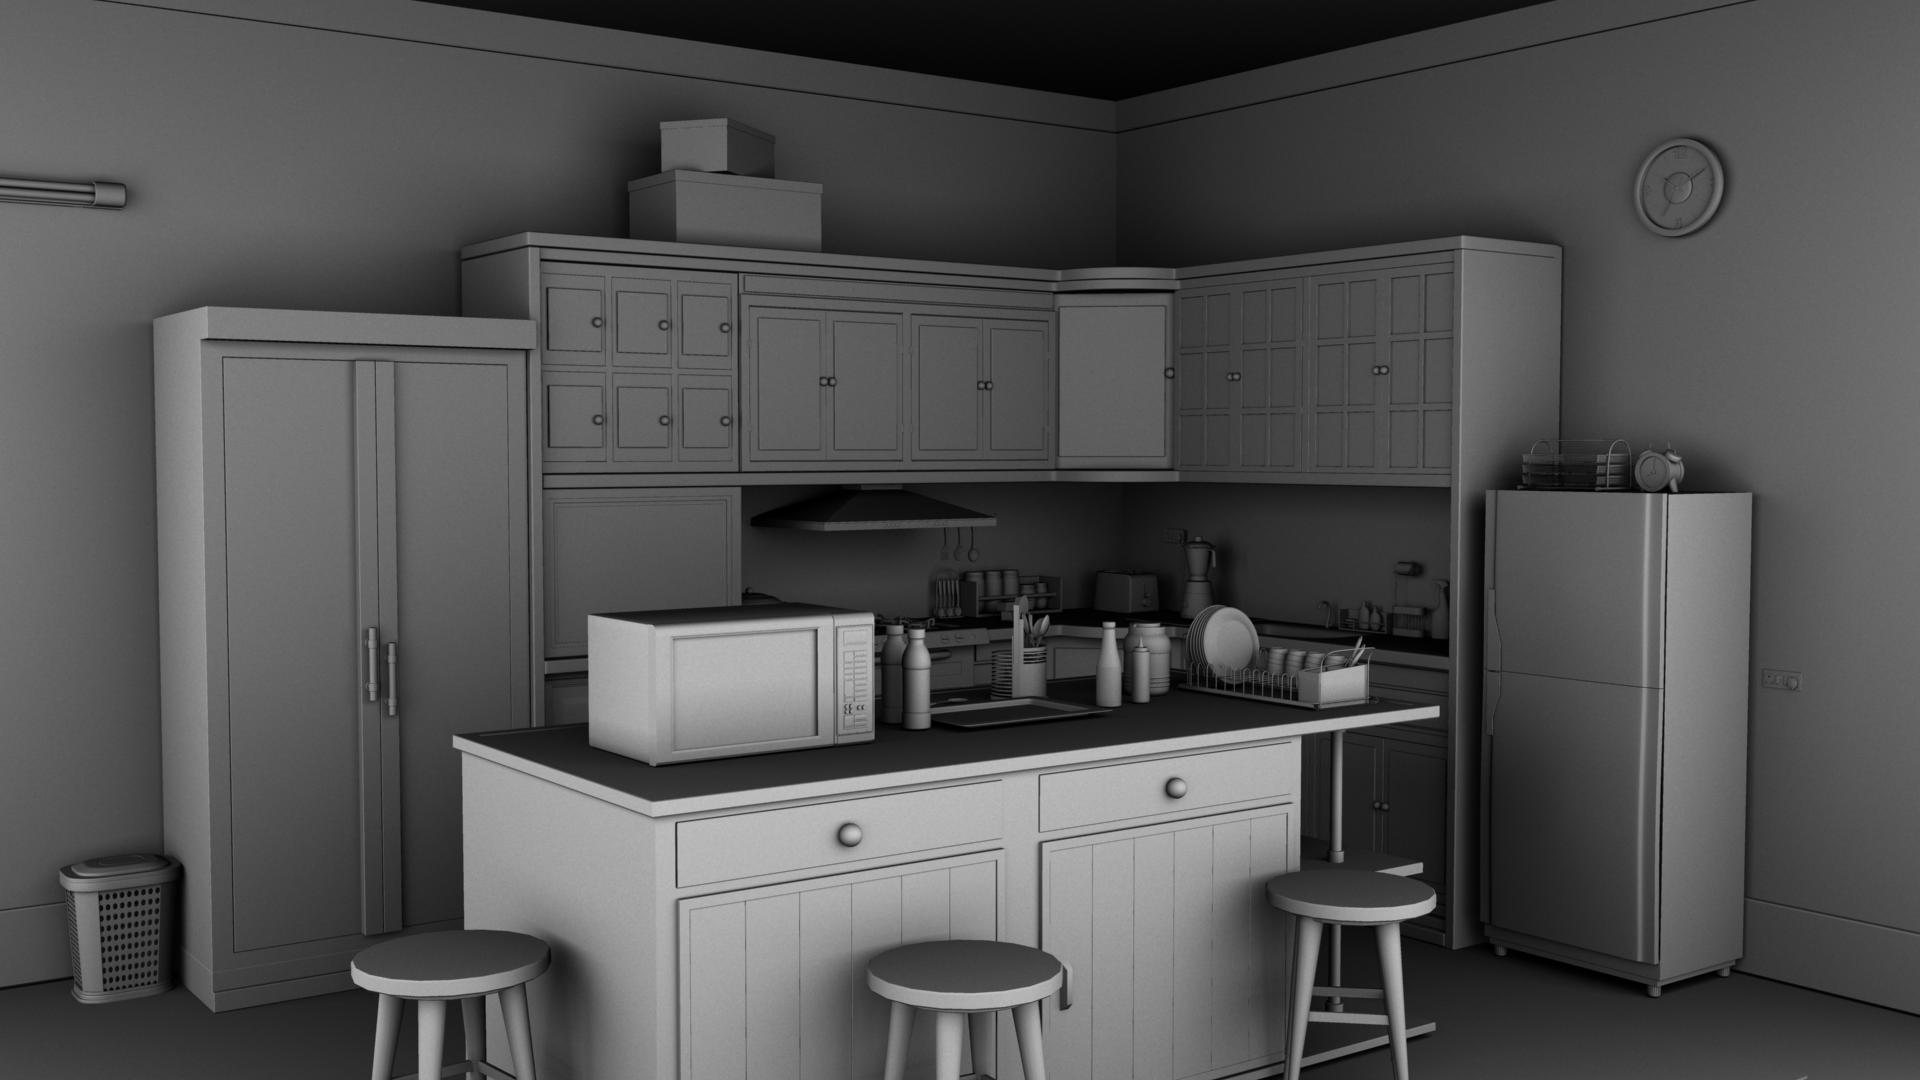 cozy kitchen 3d model fbx max ma mb obj 128383